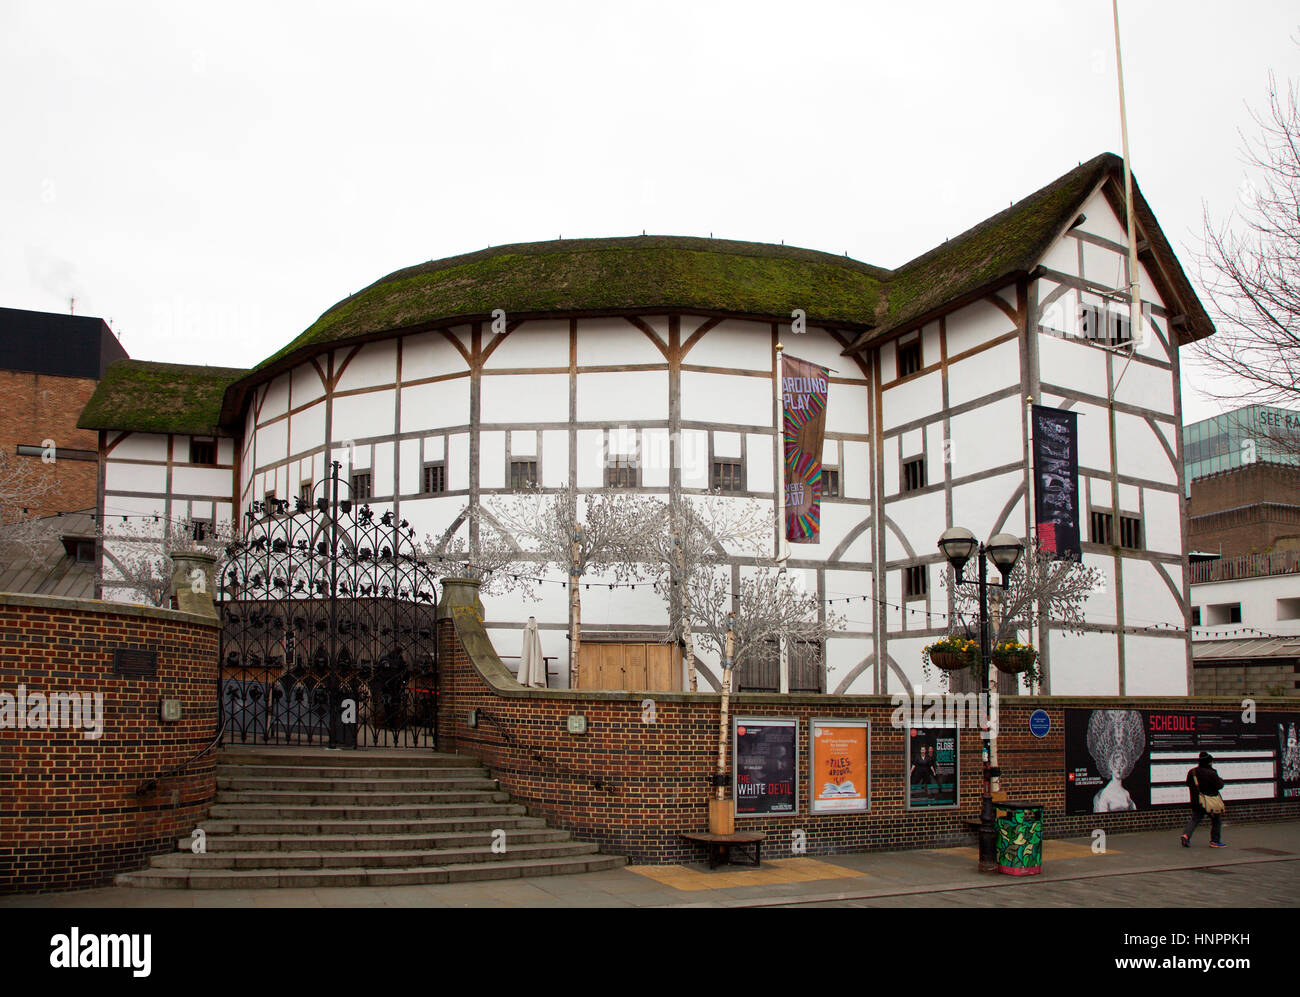 Globe Theatre Bankside London - Stock Image